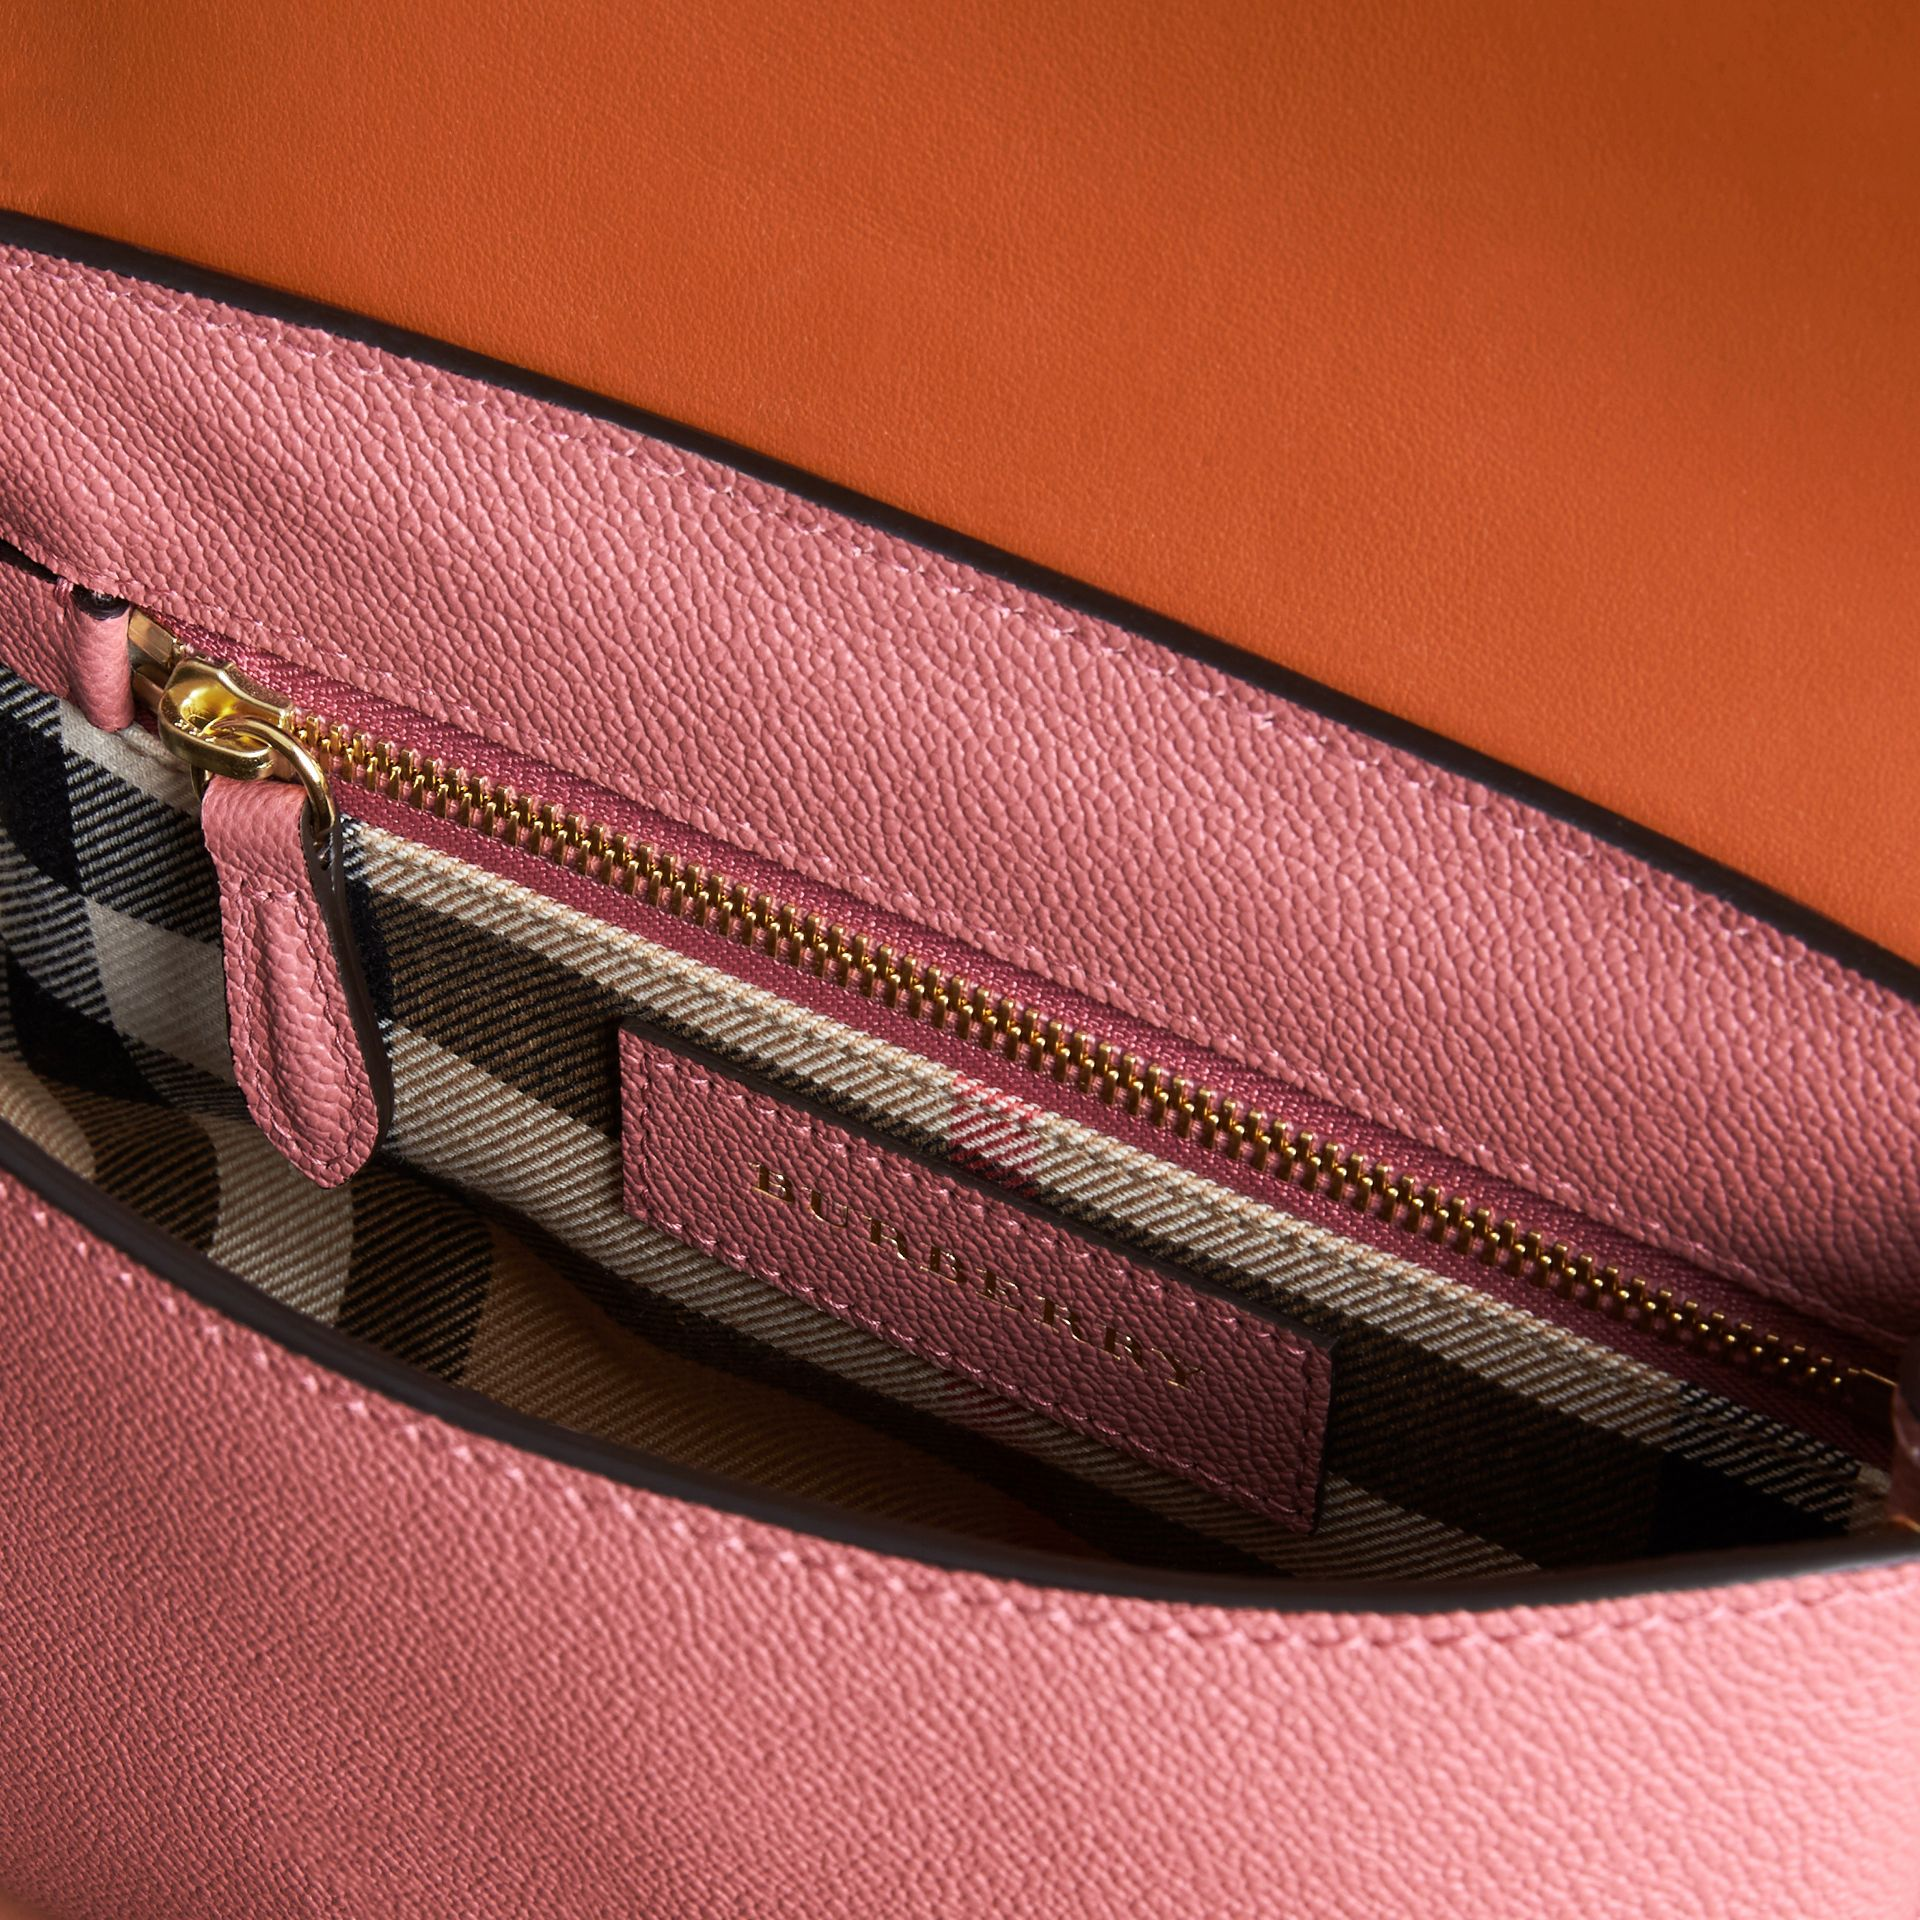 The Buckle Crossbody Bag in Trompe L'oeil Leather in Dusty Pink/bright Toffee - gallery image 5